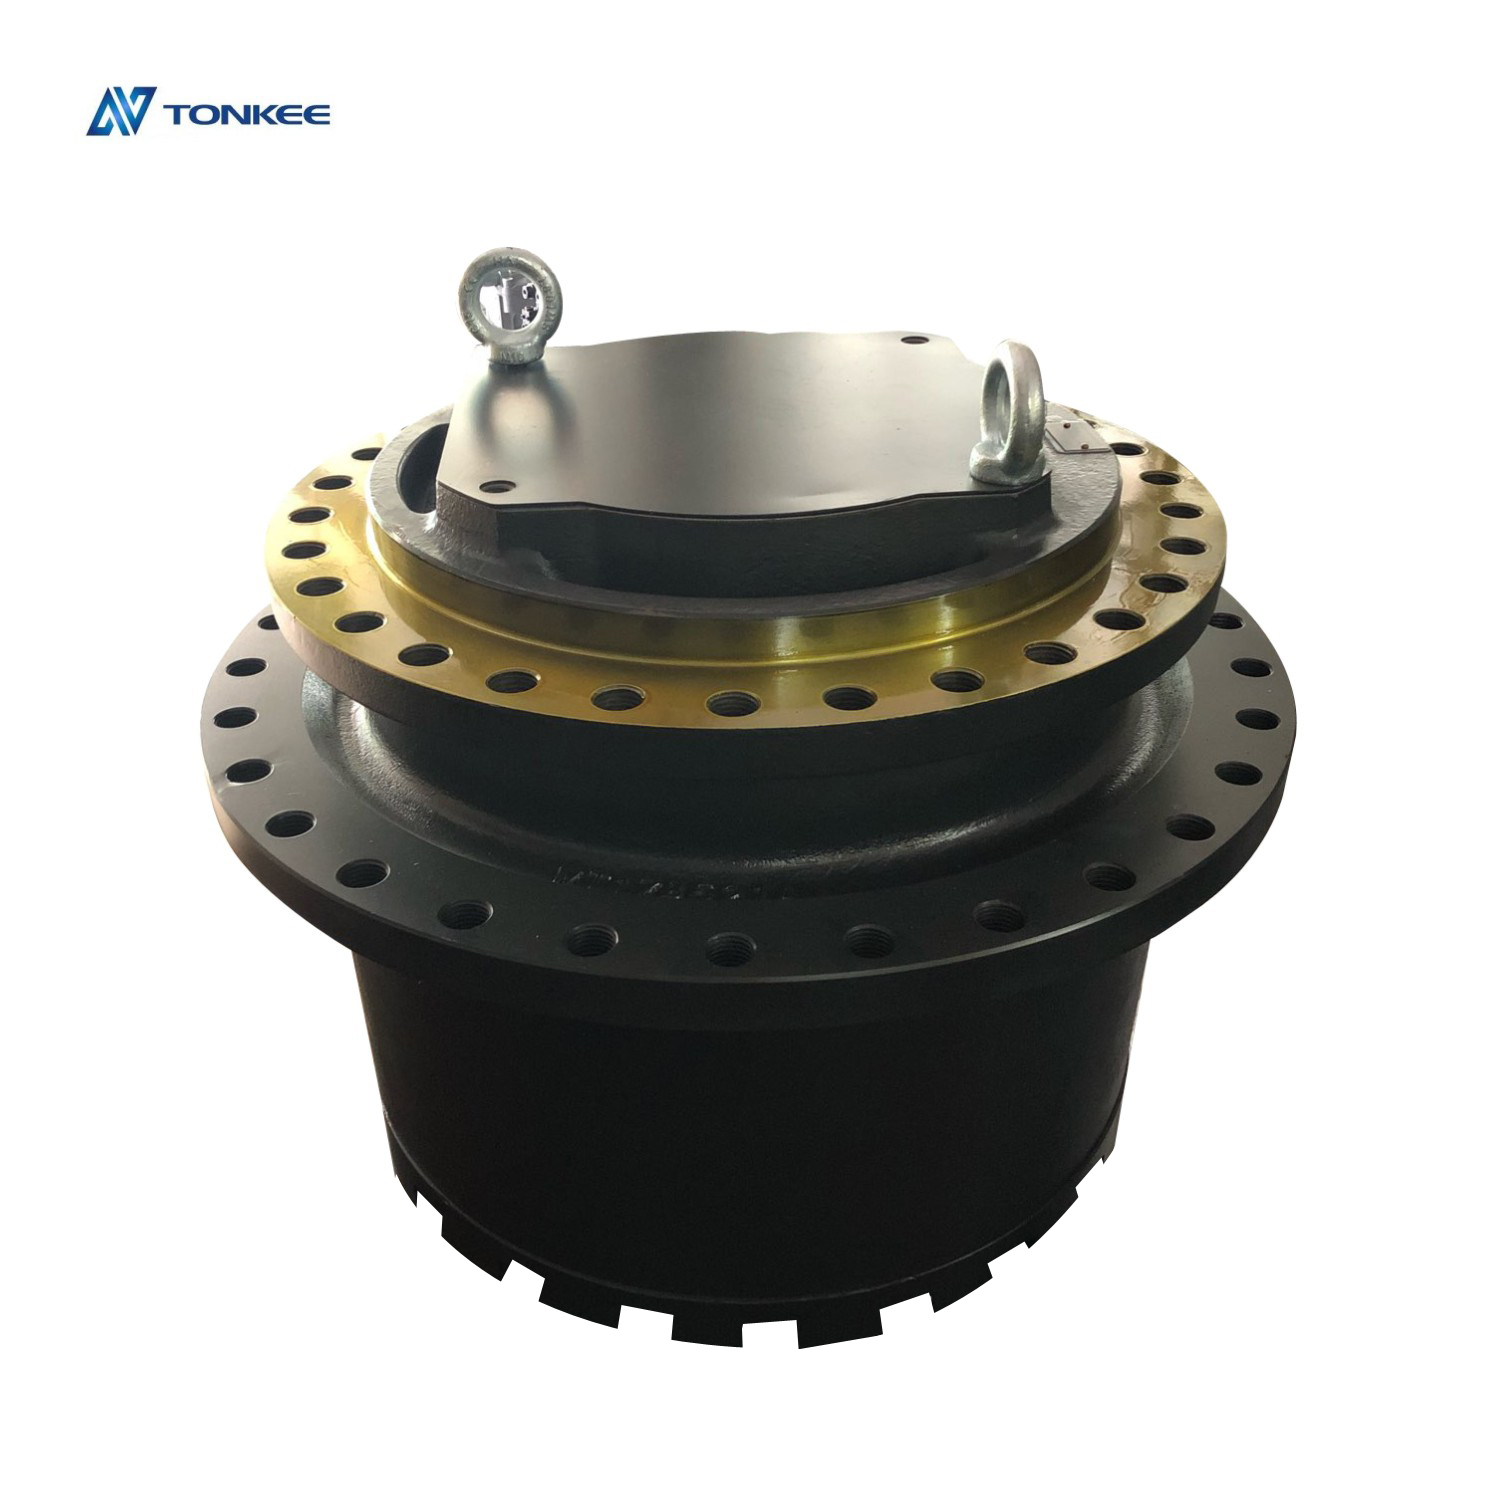 OKUBO WT17BC speed reducer PC750 PC800 PC850-8 SK850 travel gearbox 80 ton excavator final drive group